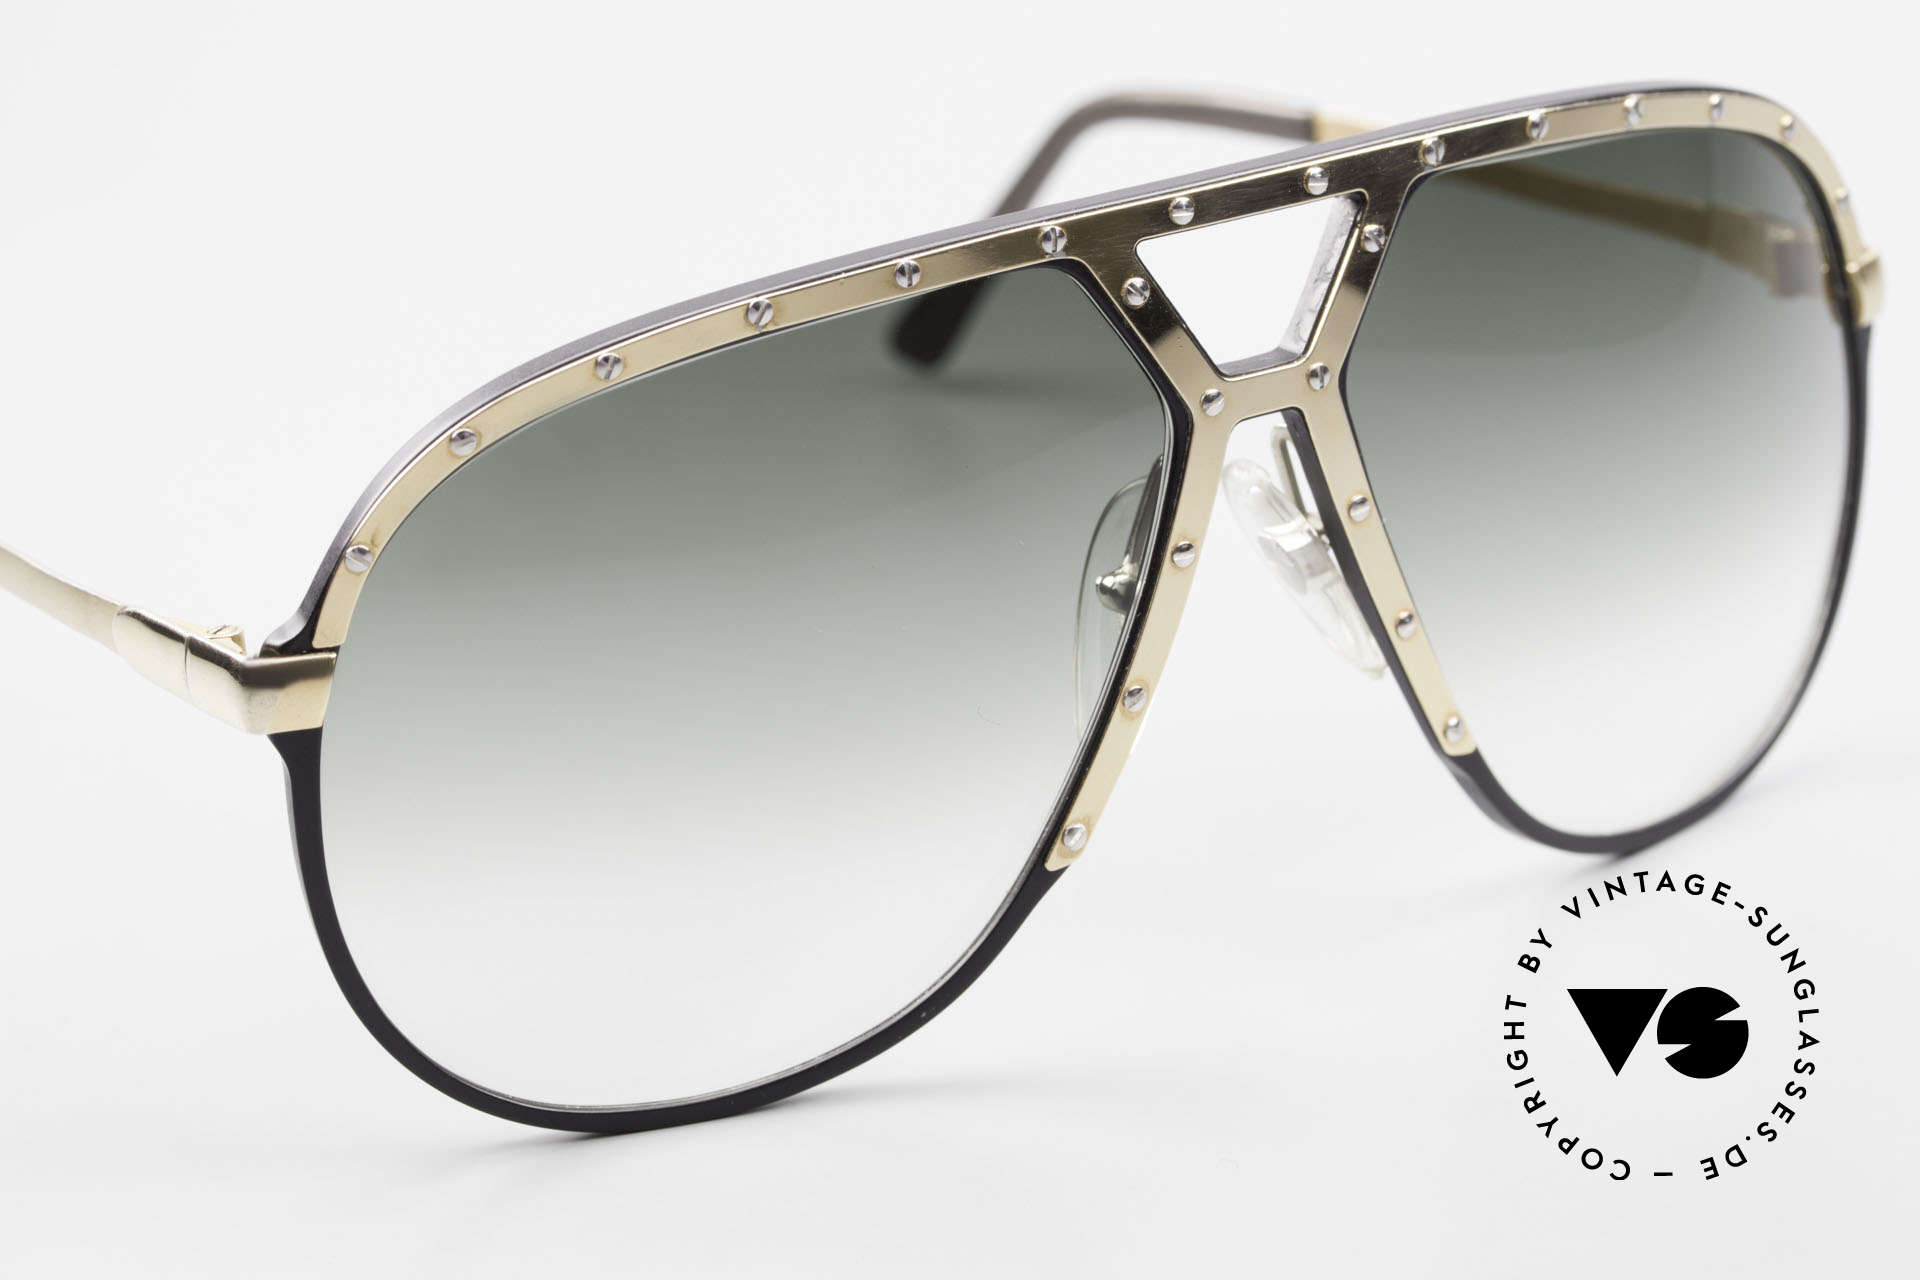 Alpina M1 80's Sunglasses West Germany, unworn collector's item comes with a Bvlgari case, Made for Men